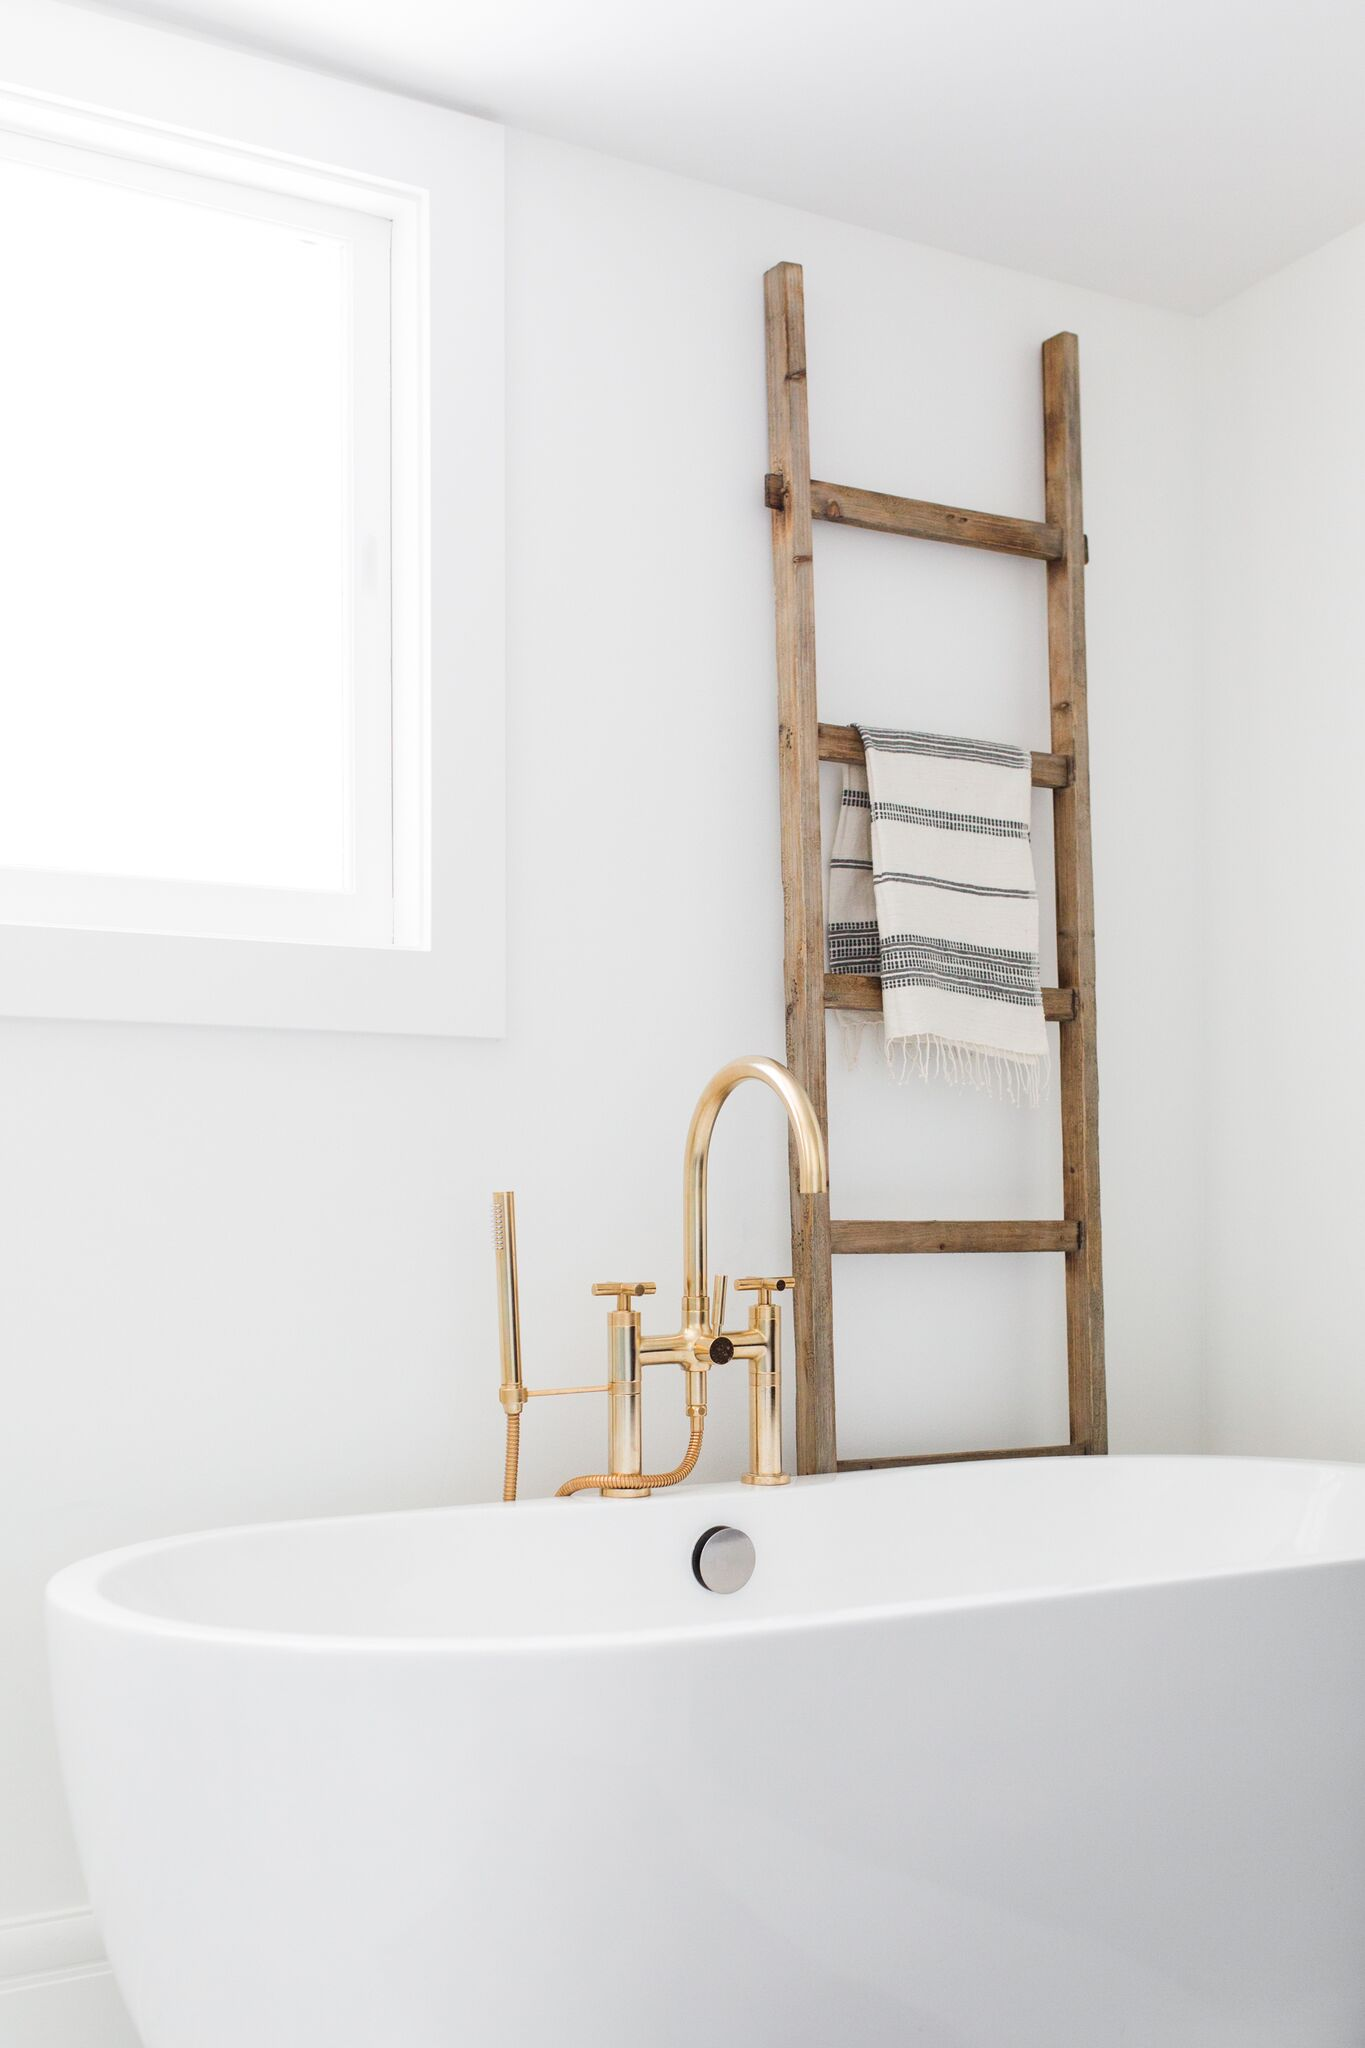 Small wooden ladder standing behind tub